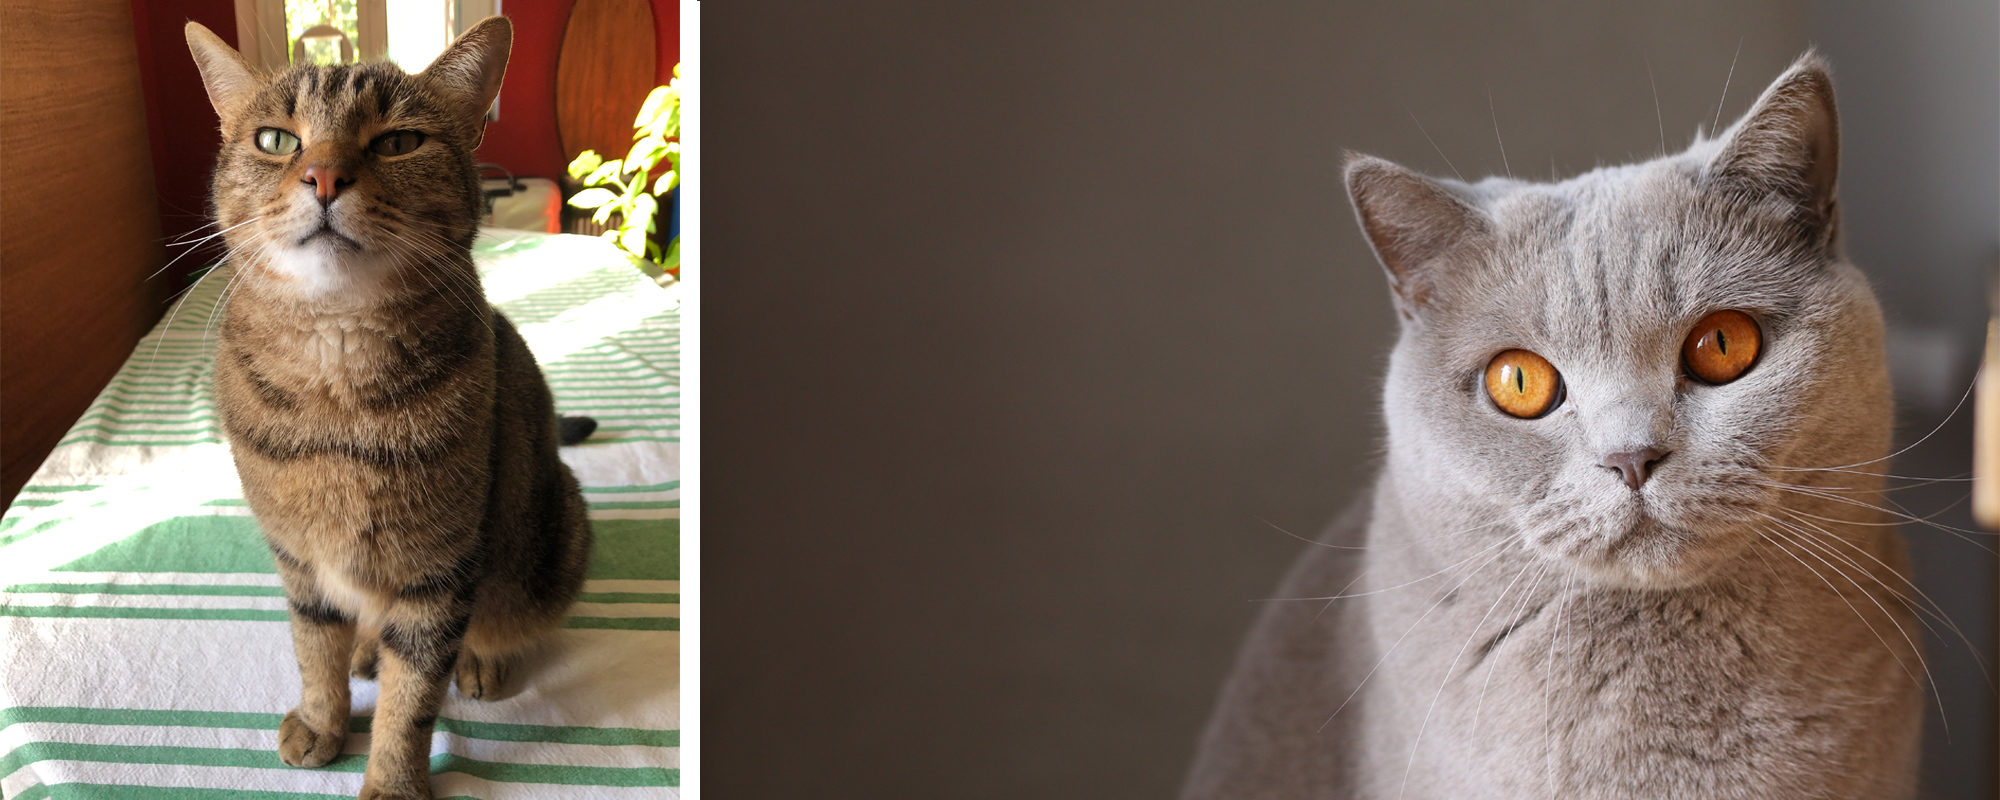 Italian brown tiger cat with green eyes sitting up on a dining table covered in a green and white striped cotton cloth (left). Soft, fluffy grey cat with yellow eyes, looking up rather mournfully.